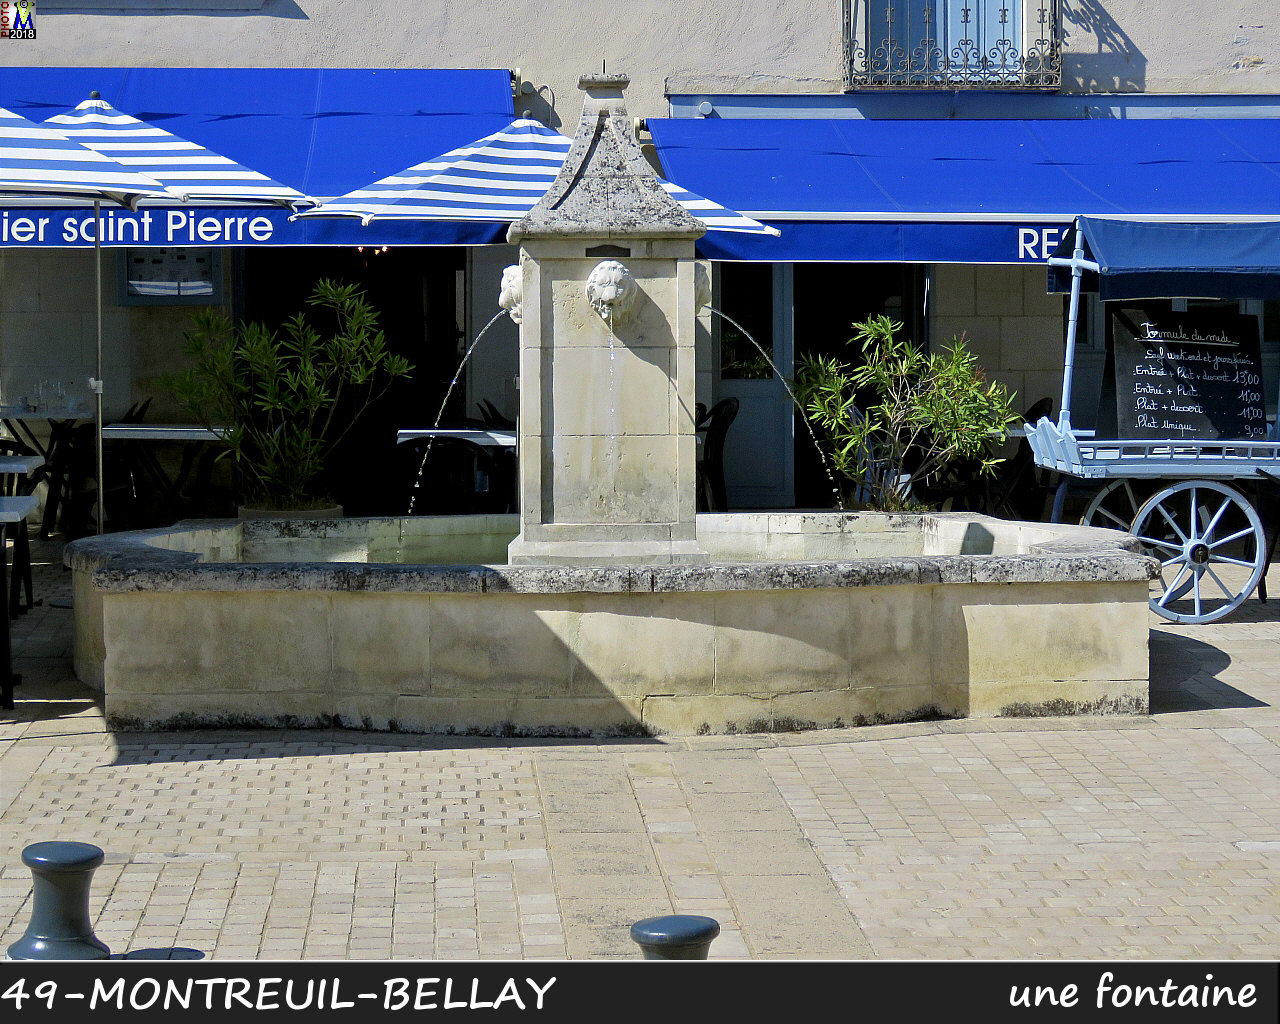 49MONTREUIL-BELLAY_fontaine_1000.jpg